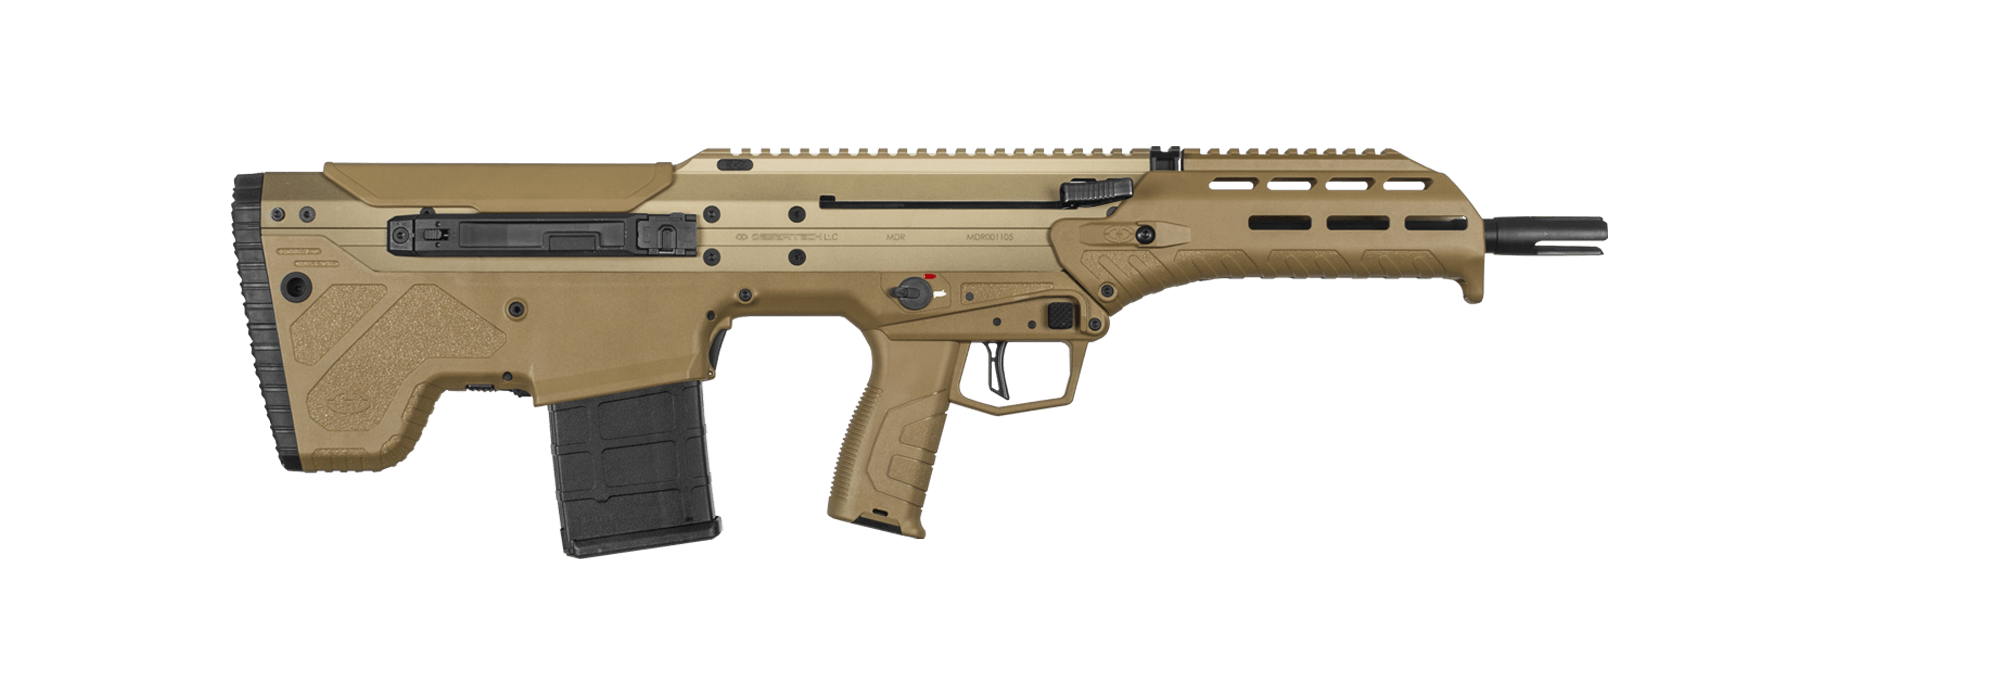 MDR FDE rifle chassis